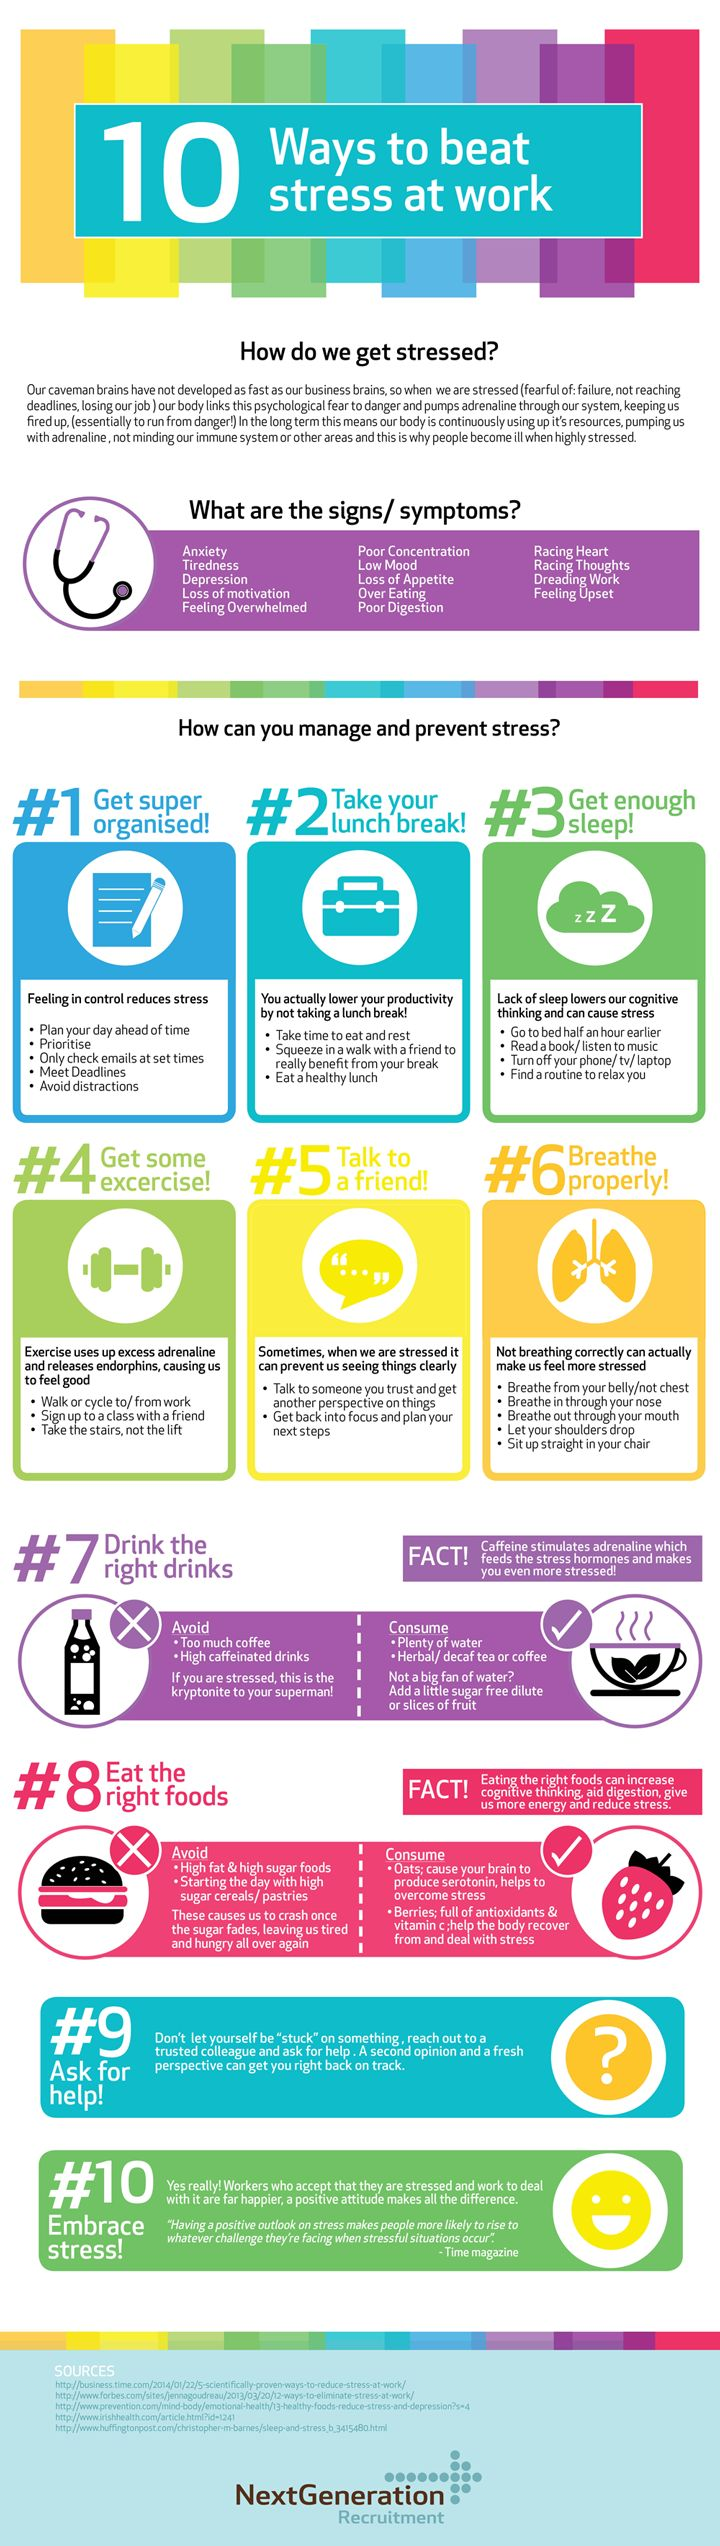 Psychology-Infographic-10-Ways-to-Beat-Stress-at-Work Psychology Infographic : 10 Ways to Beat Stress at Work by Next Generation Recruitment